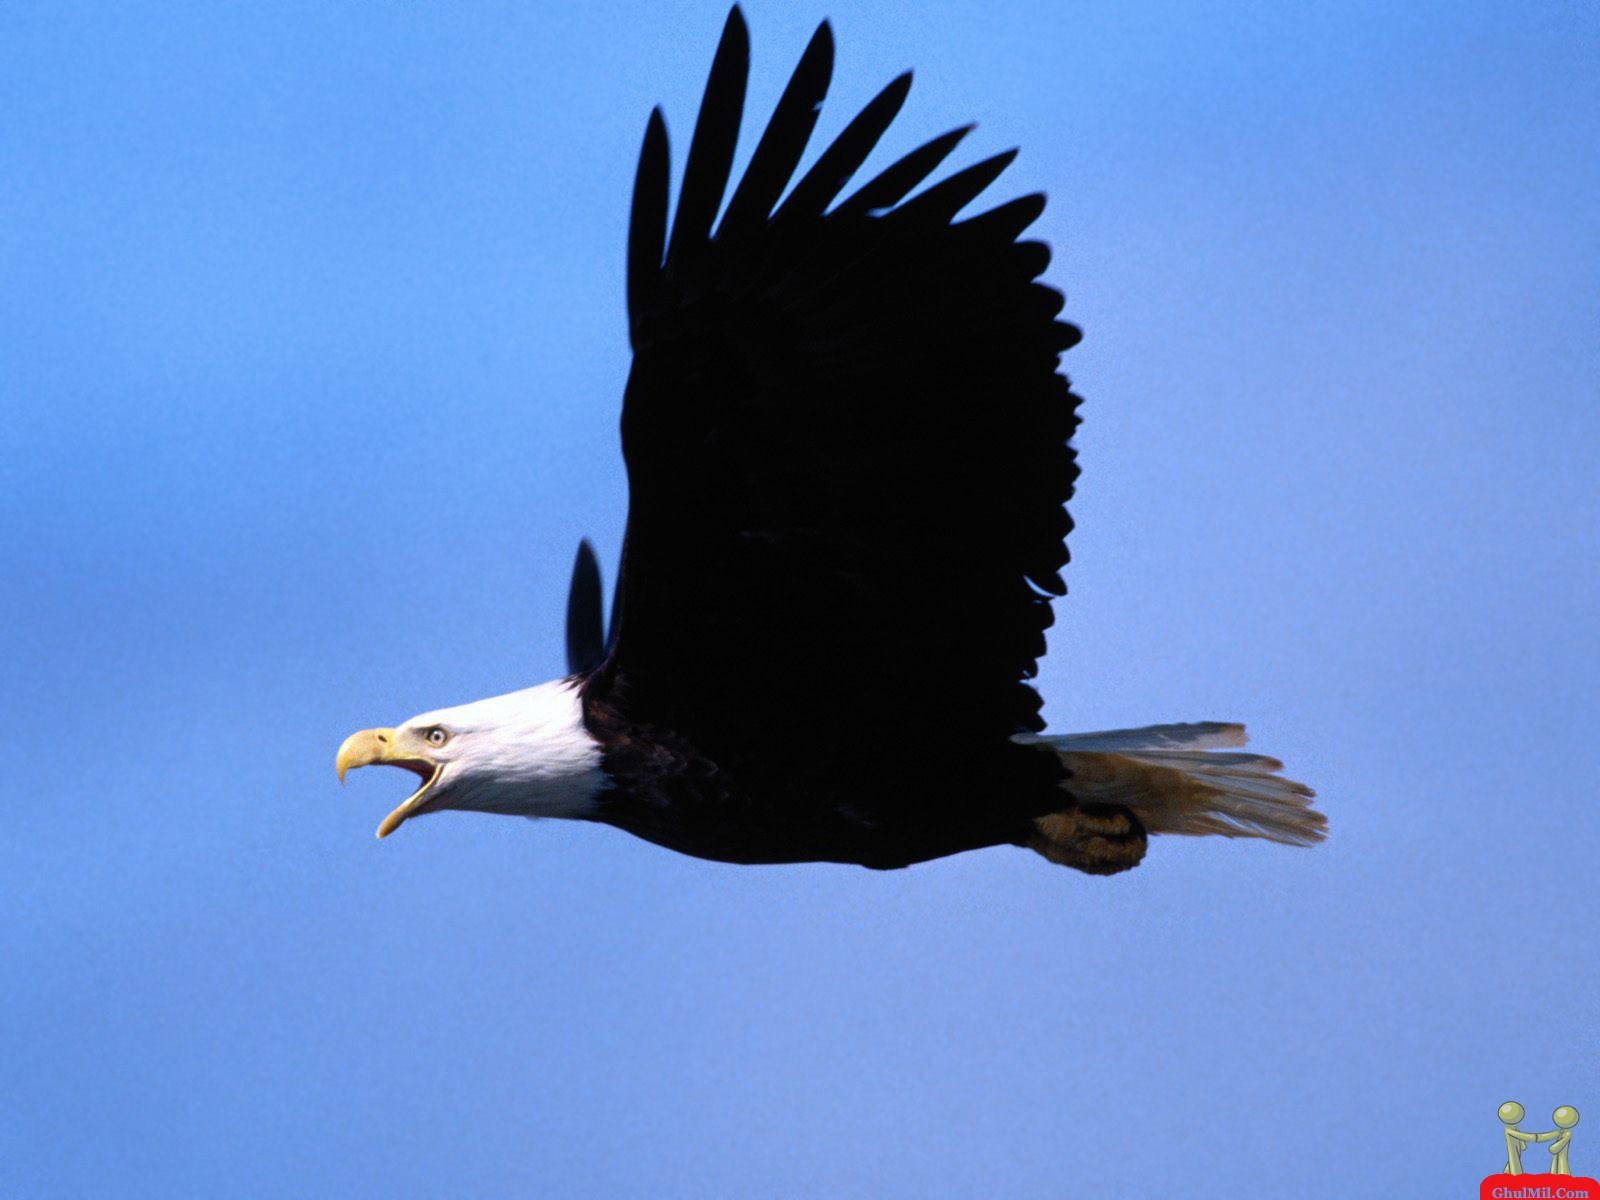 http://3.bp.blogspot.com/-UDWcfJBhHWQ/TbP7Rv90otI/AAAAAAAAAAw/zCvPVyXKUNQ/s1600/amazing-beautiful-hd-wallpaper-of-flying-eagle.jpg